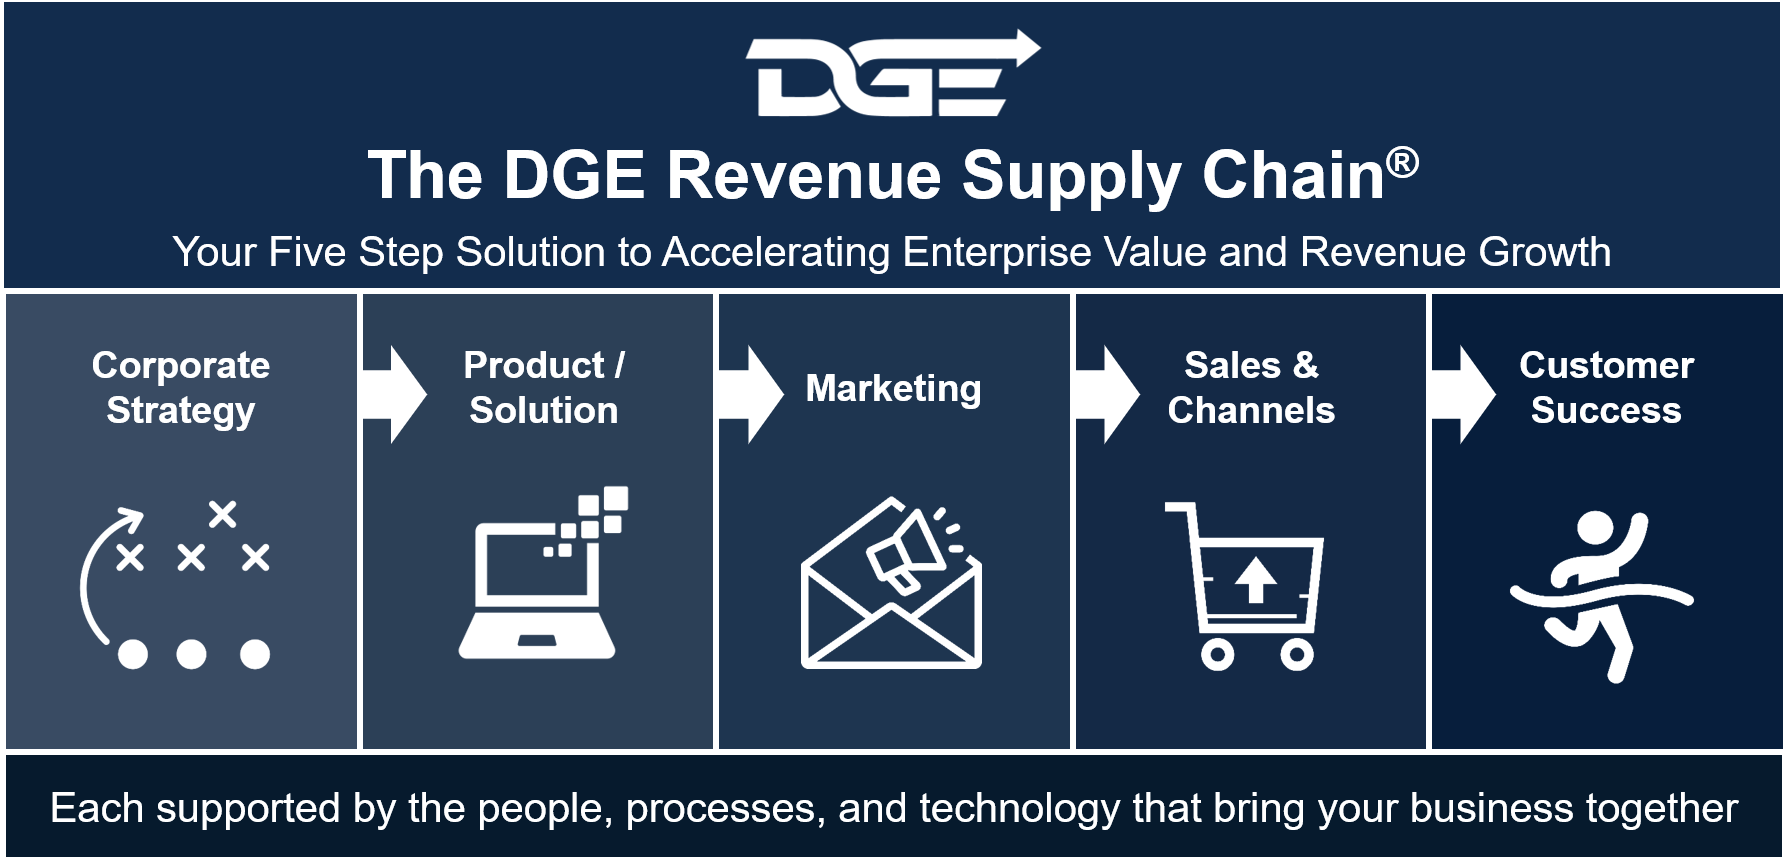 DGE Revenue Supply Chain Graphic.png